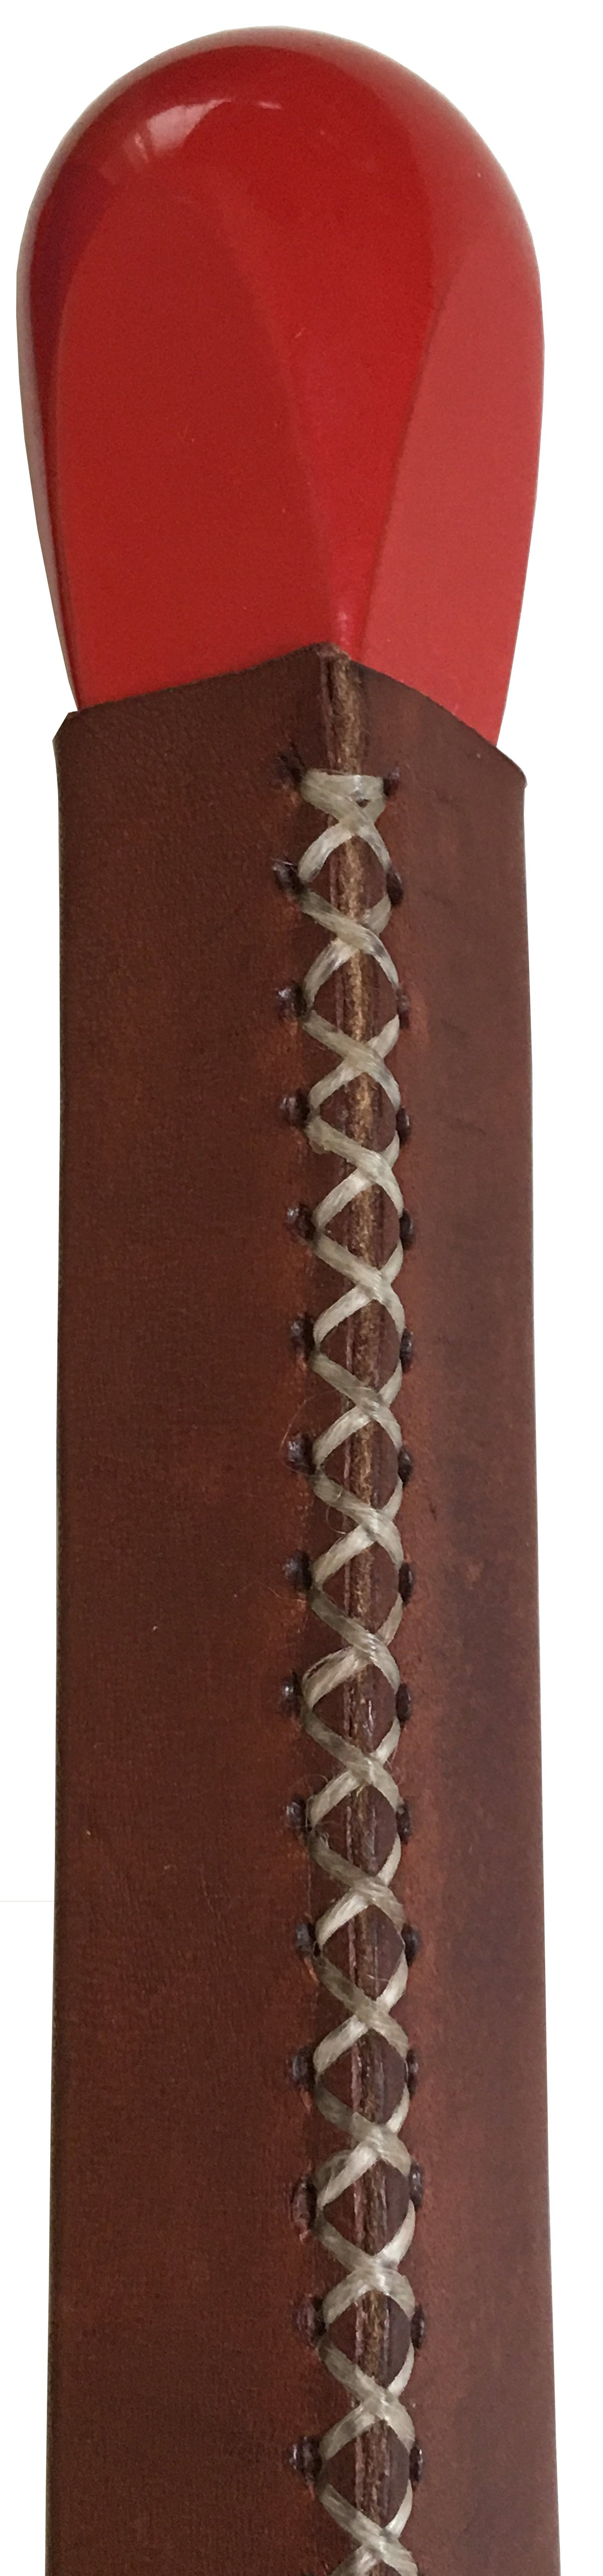 Match-Shaped Lighter, Brown Leather